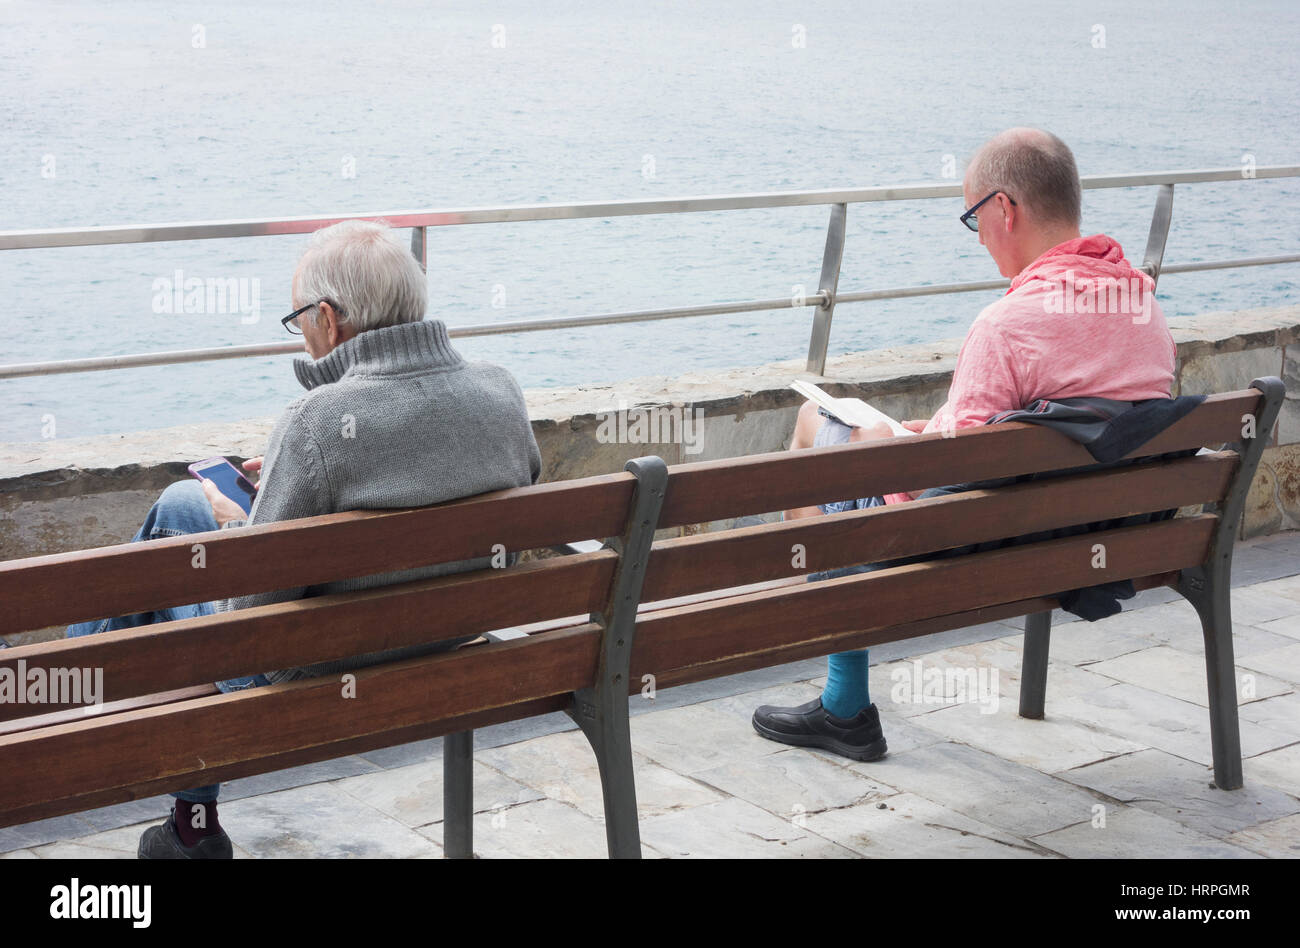 Two men reading overlooking the sea. One with paperback book and the other with mobile device. Stock Photo